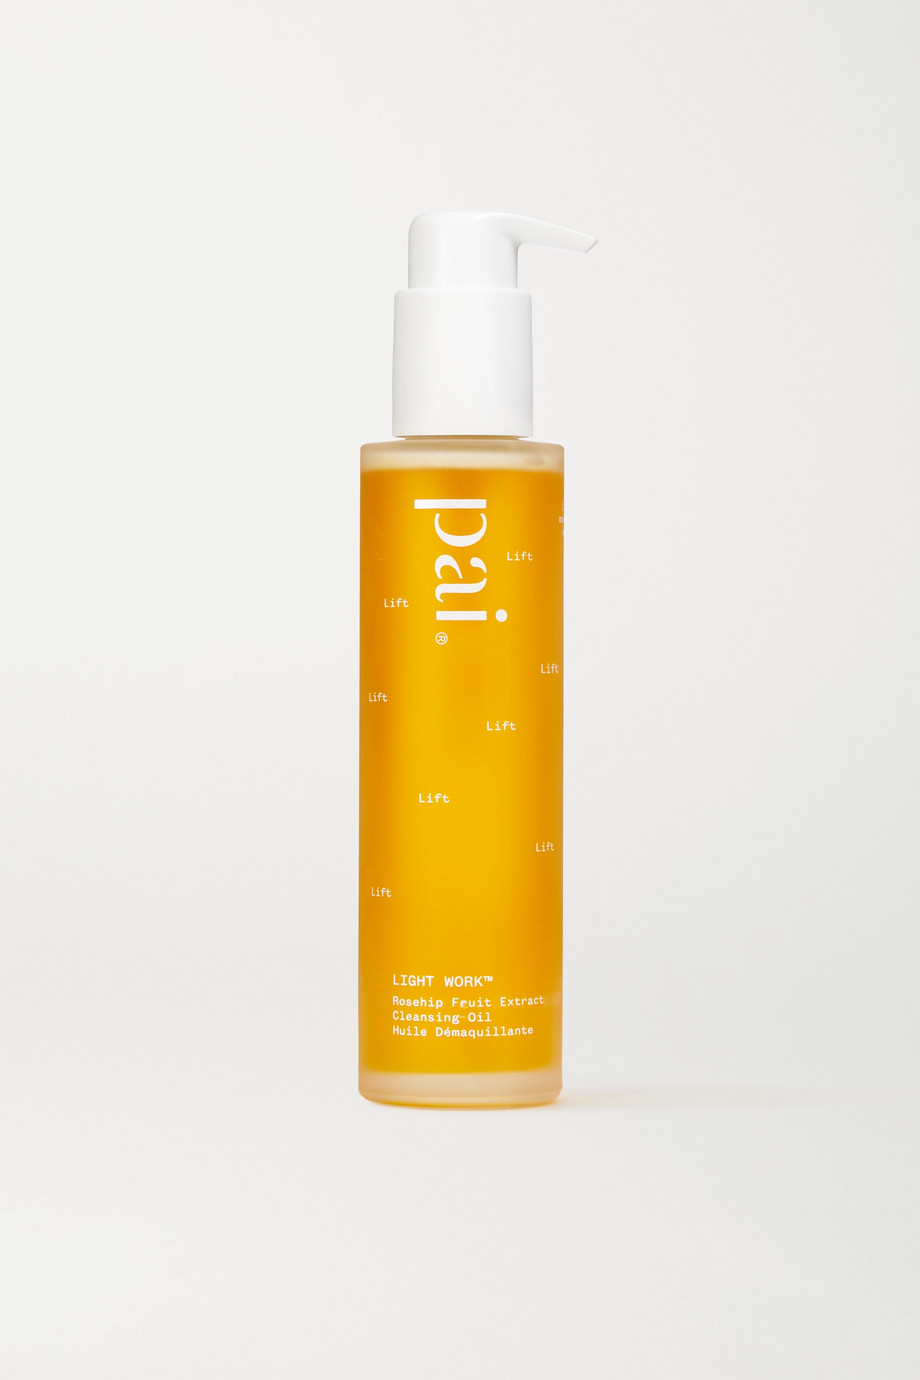 Pai Skincare + NET SUSTAIN Light Work Rosehip Cleansing Oil, 145ml